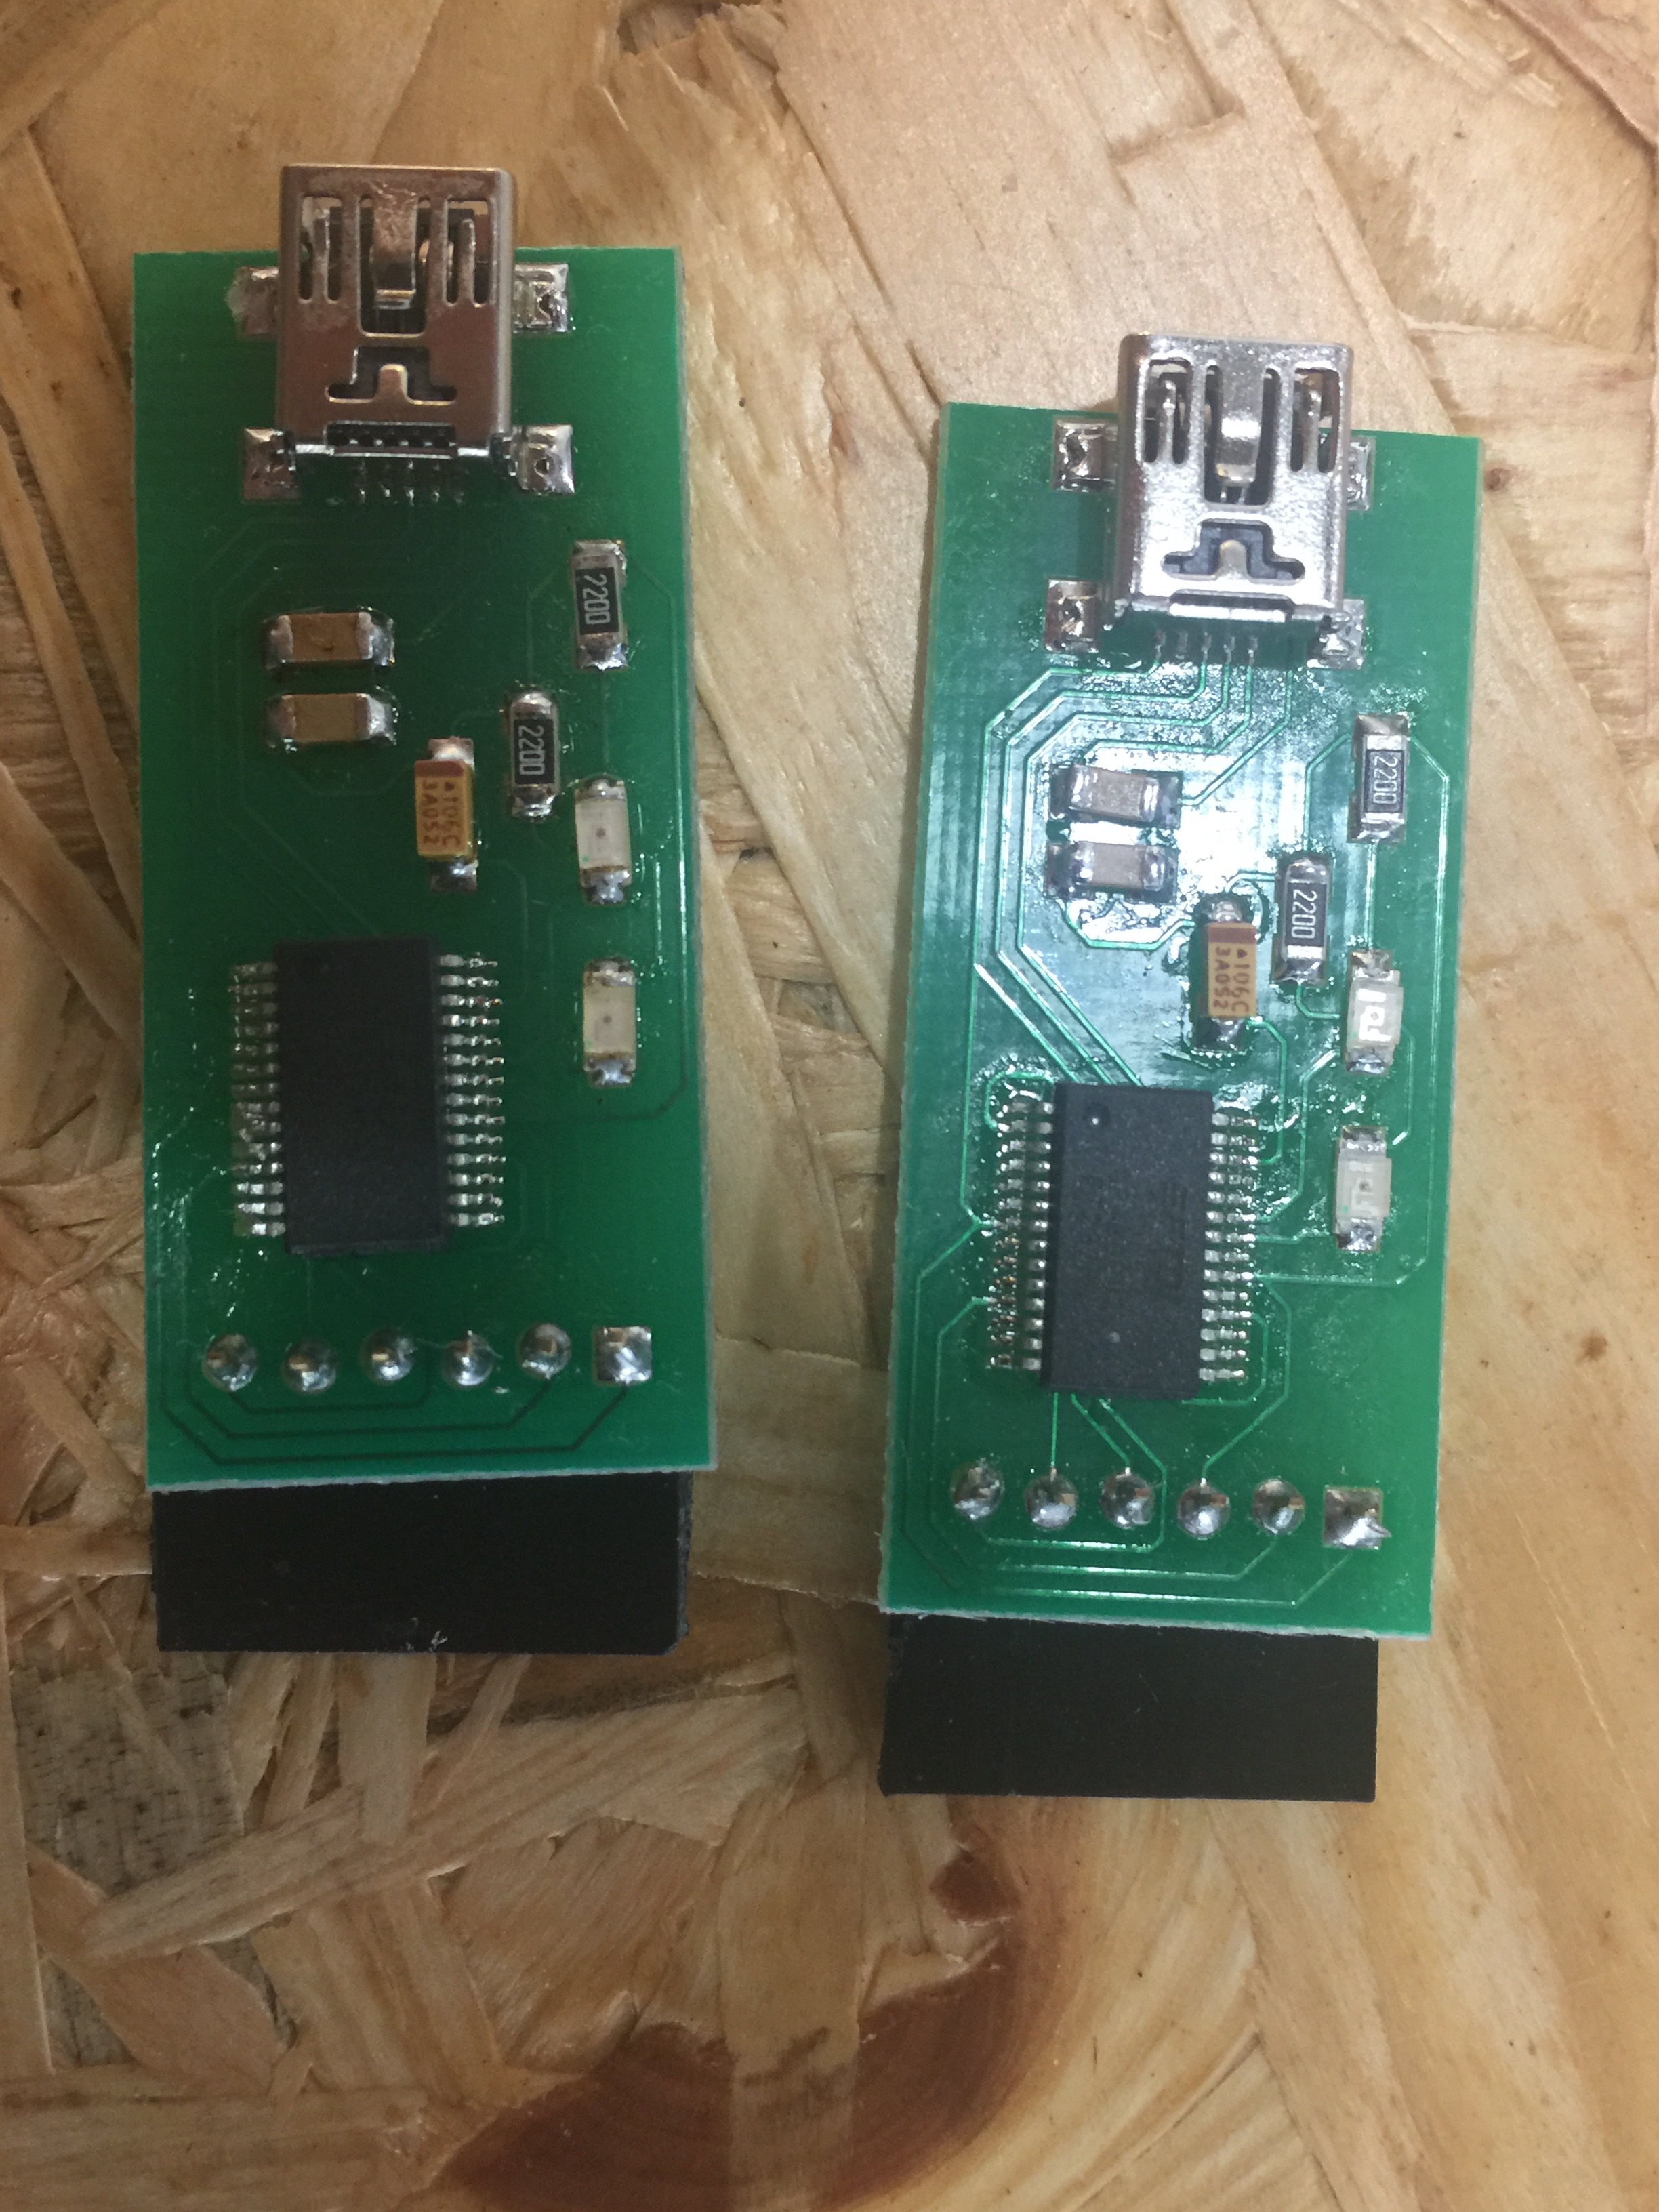 Imx Documentation Unity And User Test Pcb Ftdi Adapter Eagle Printed Circuit Boards Using The Laser Cutter During Process Pad Of First Board Was Broken So I Made Two Surface Mount Adapters Both Them Works At Least Once Second One With